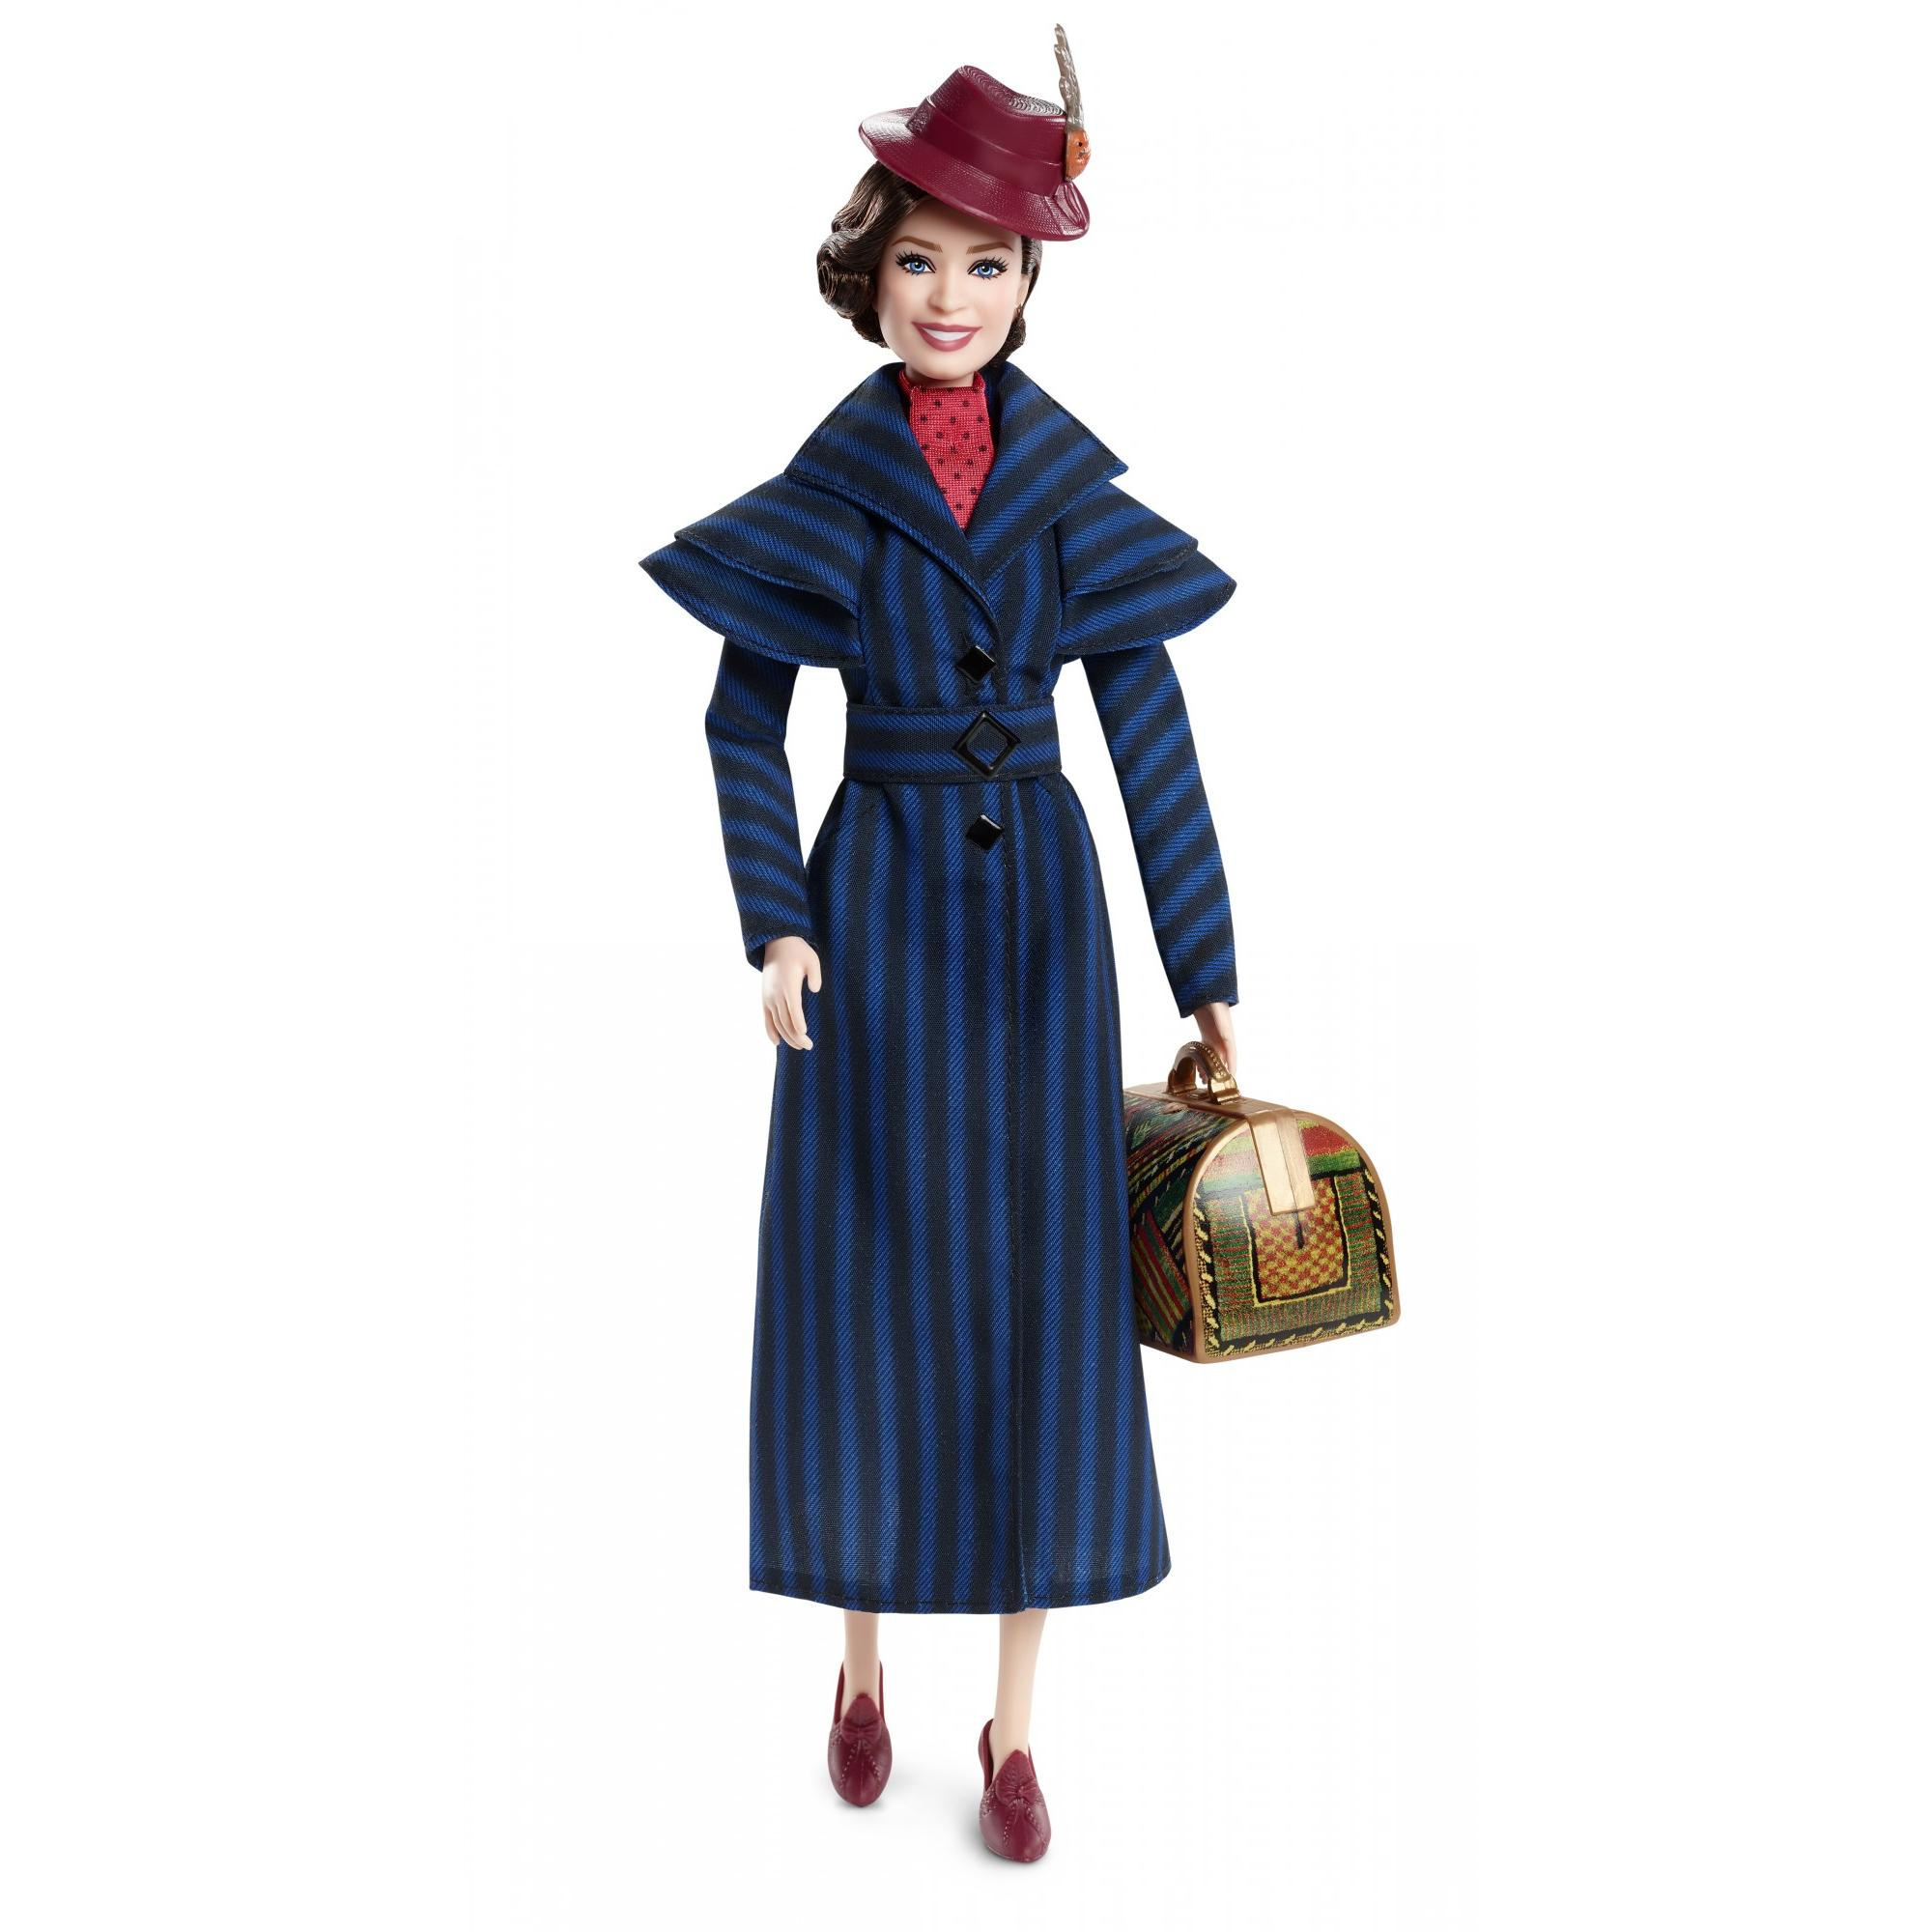 Disney Mary Poppins Returns Mary Poppins Arrives Barbie Doll by Mattel